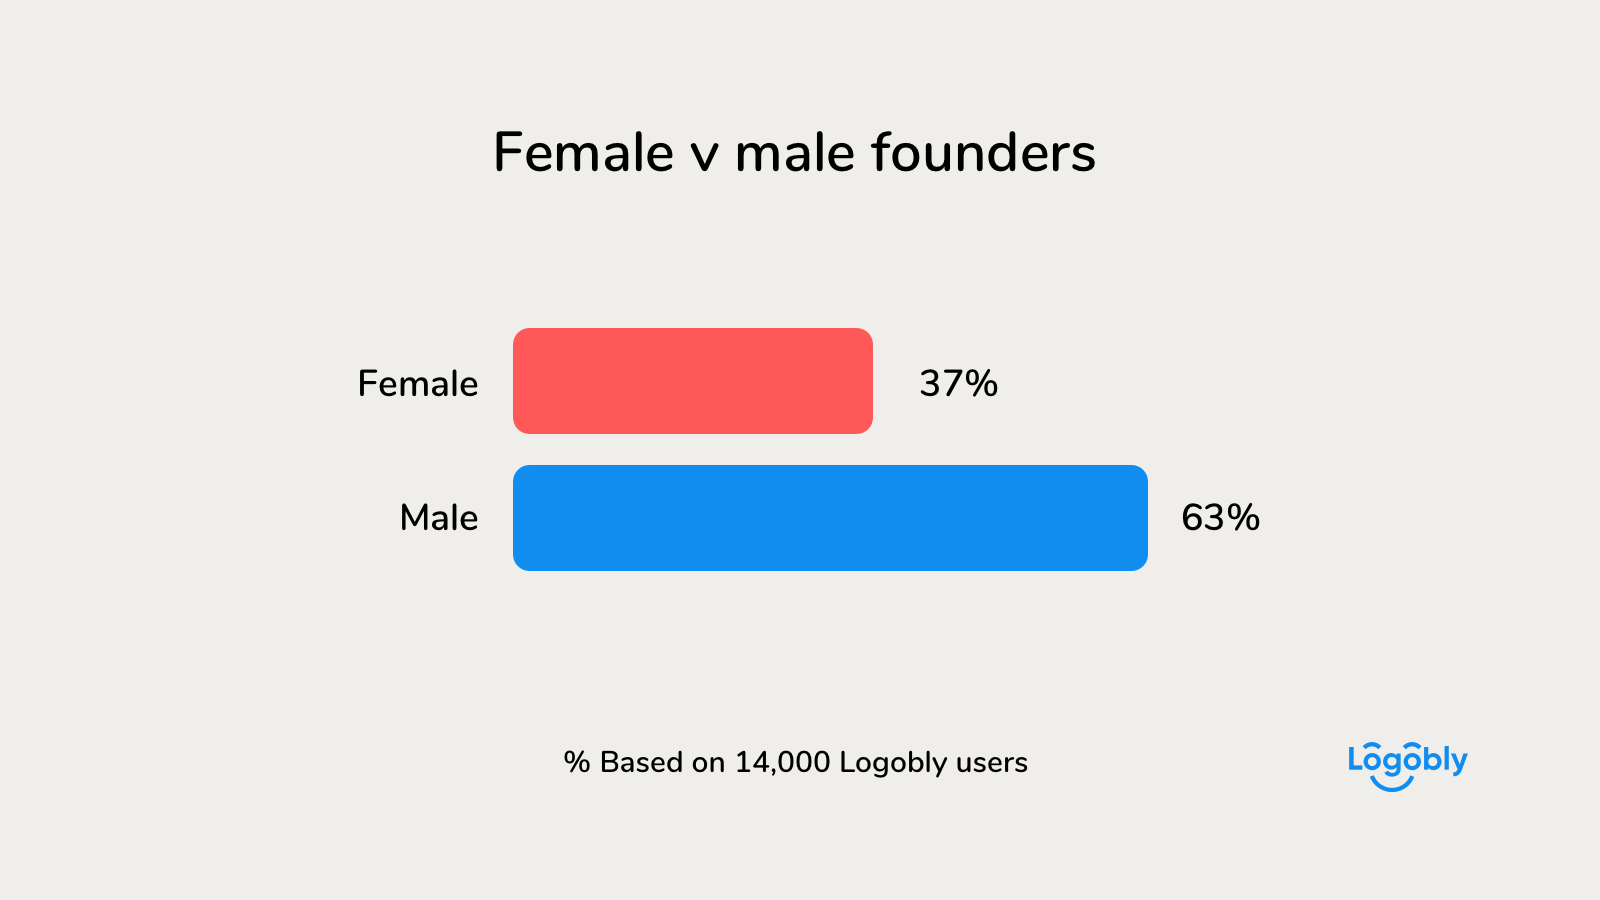 Female v male founders